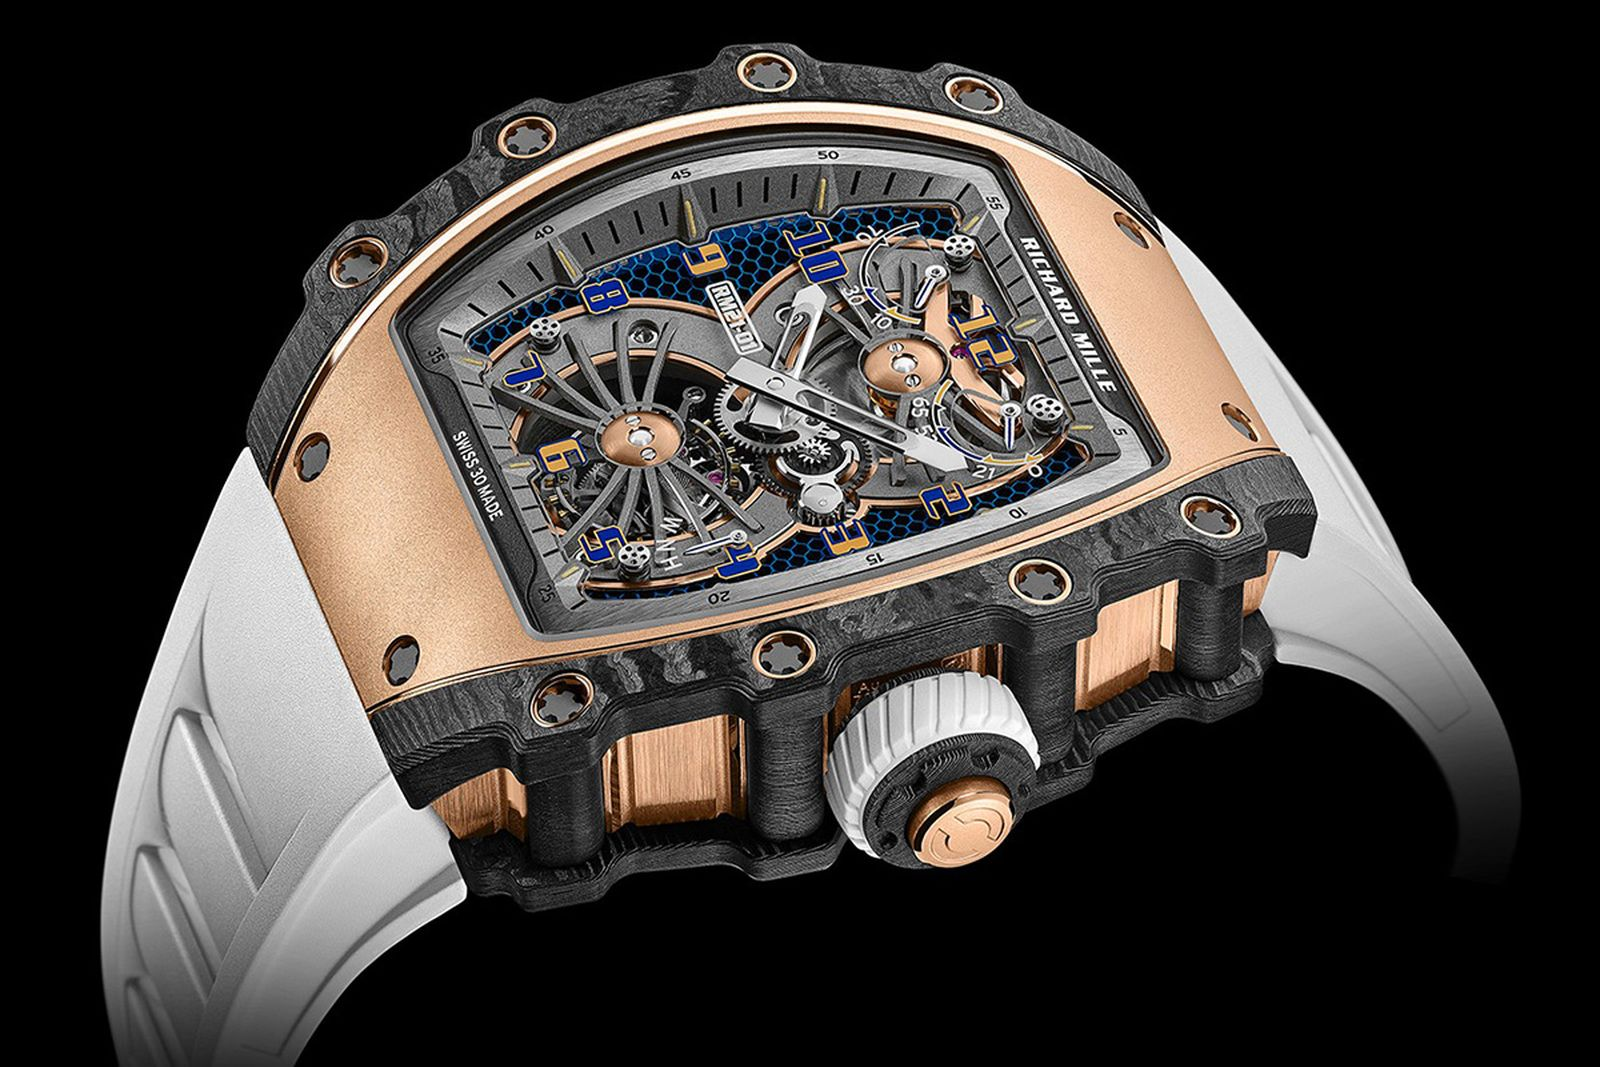 death-out-of-control-resale-why-richard-mille-watches-are-beautiful-01